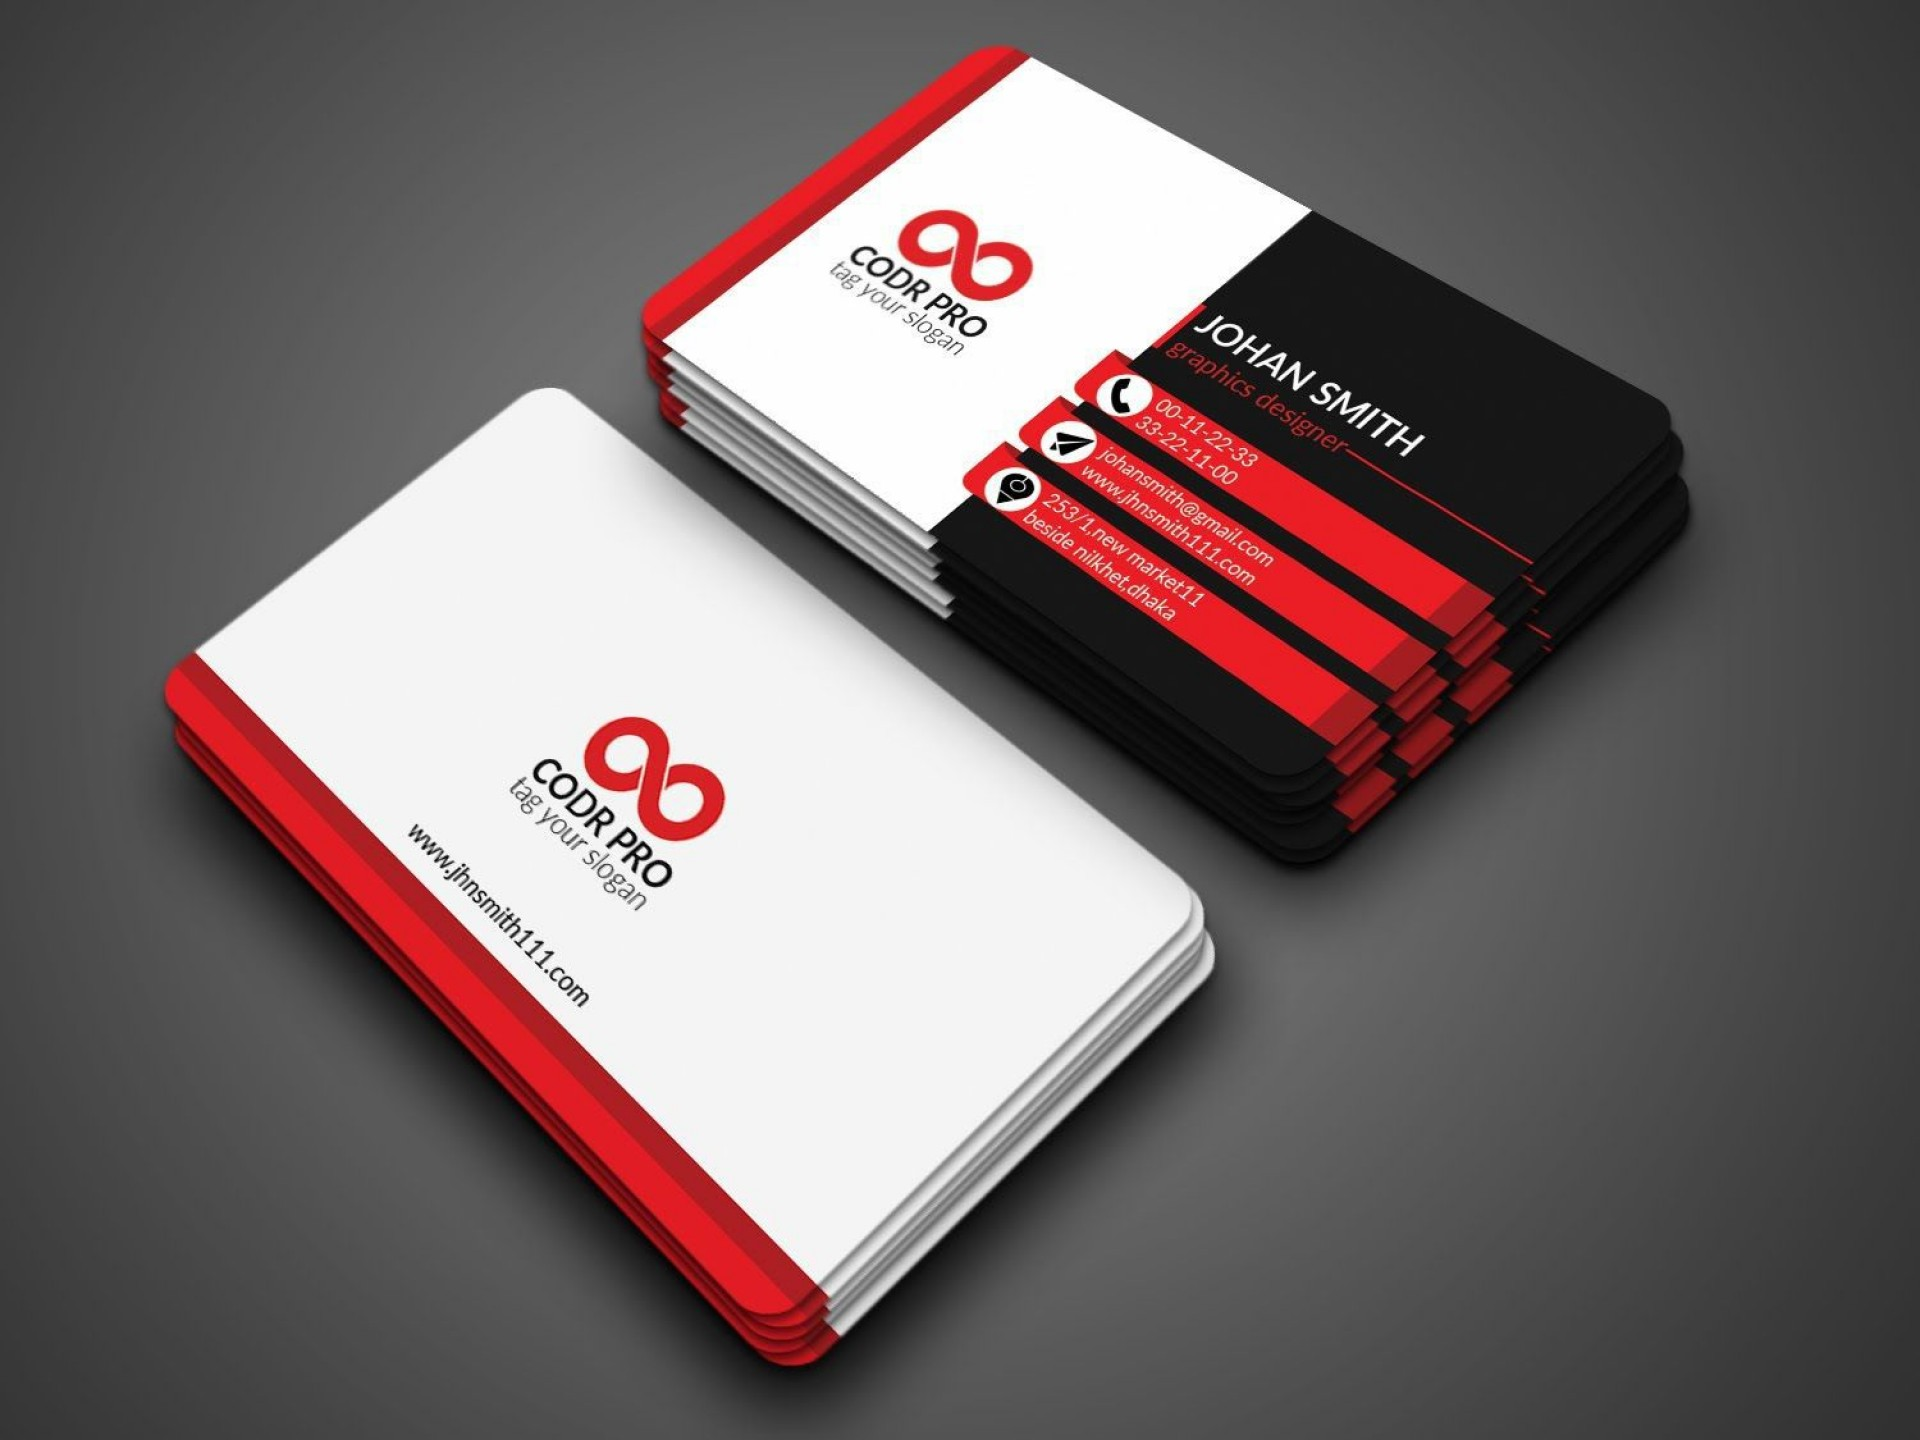 003 Fantastic Psd Busines Card Template Photo  With Bleed And Crop Mark Vistaprint Free1920